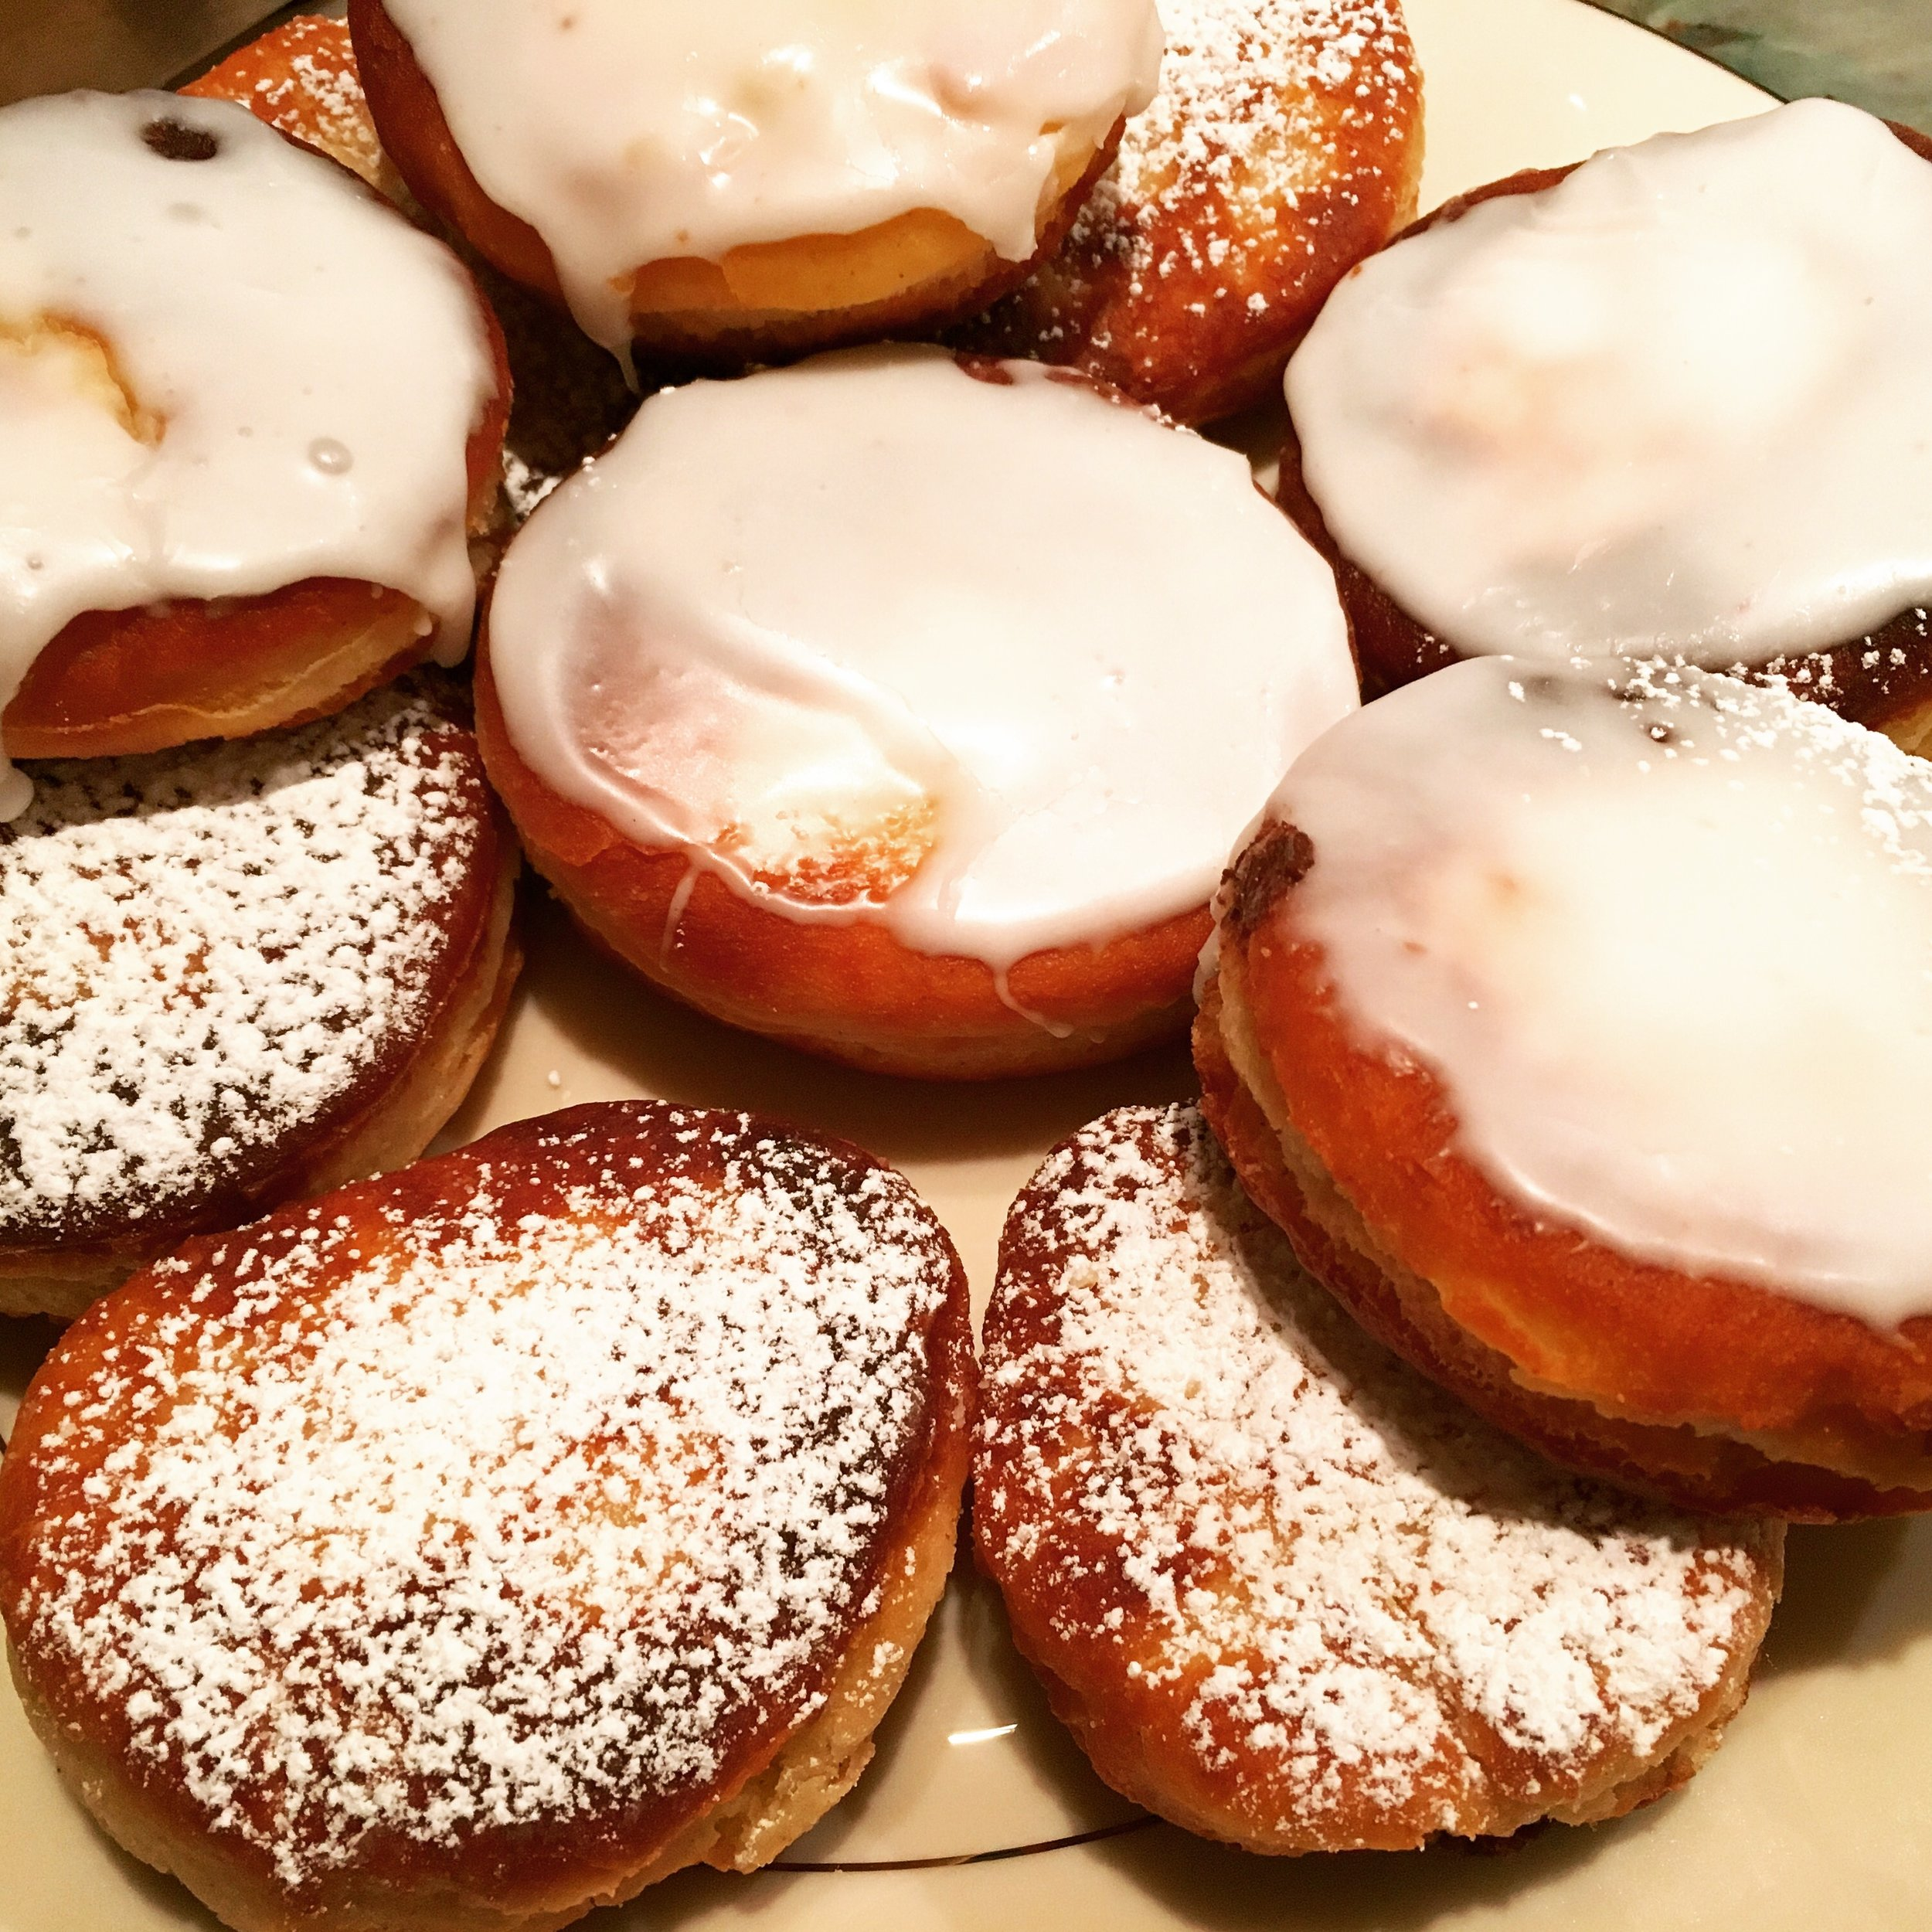 Above, sufganiyot I made with my family last Hanukkah: a culinary success but a mess getting my powdered sugar-covered nephew clean!